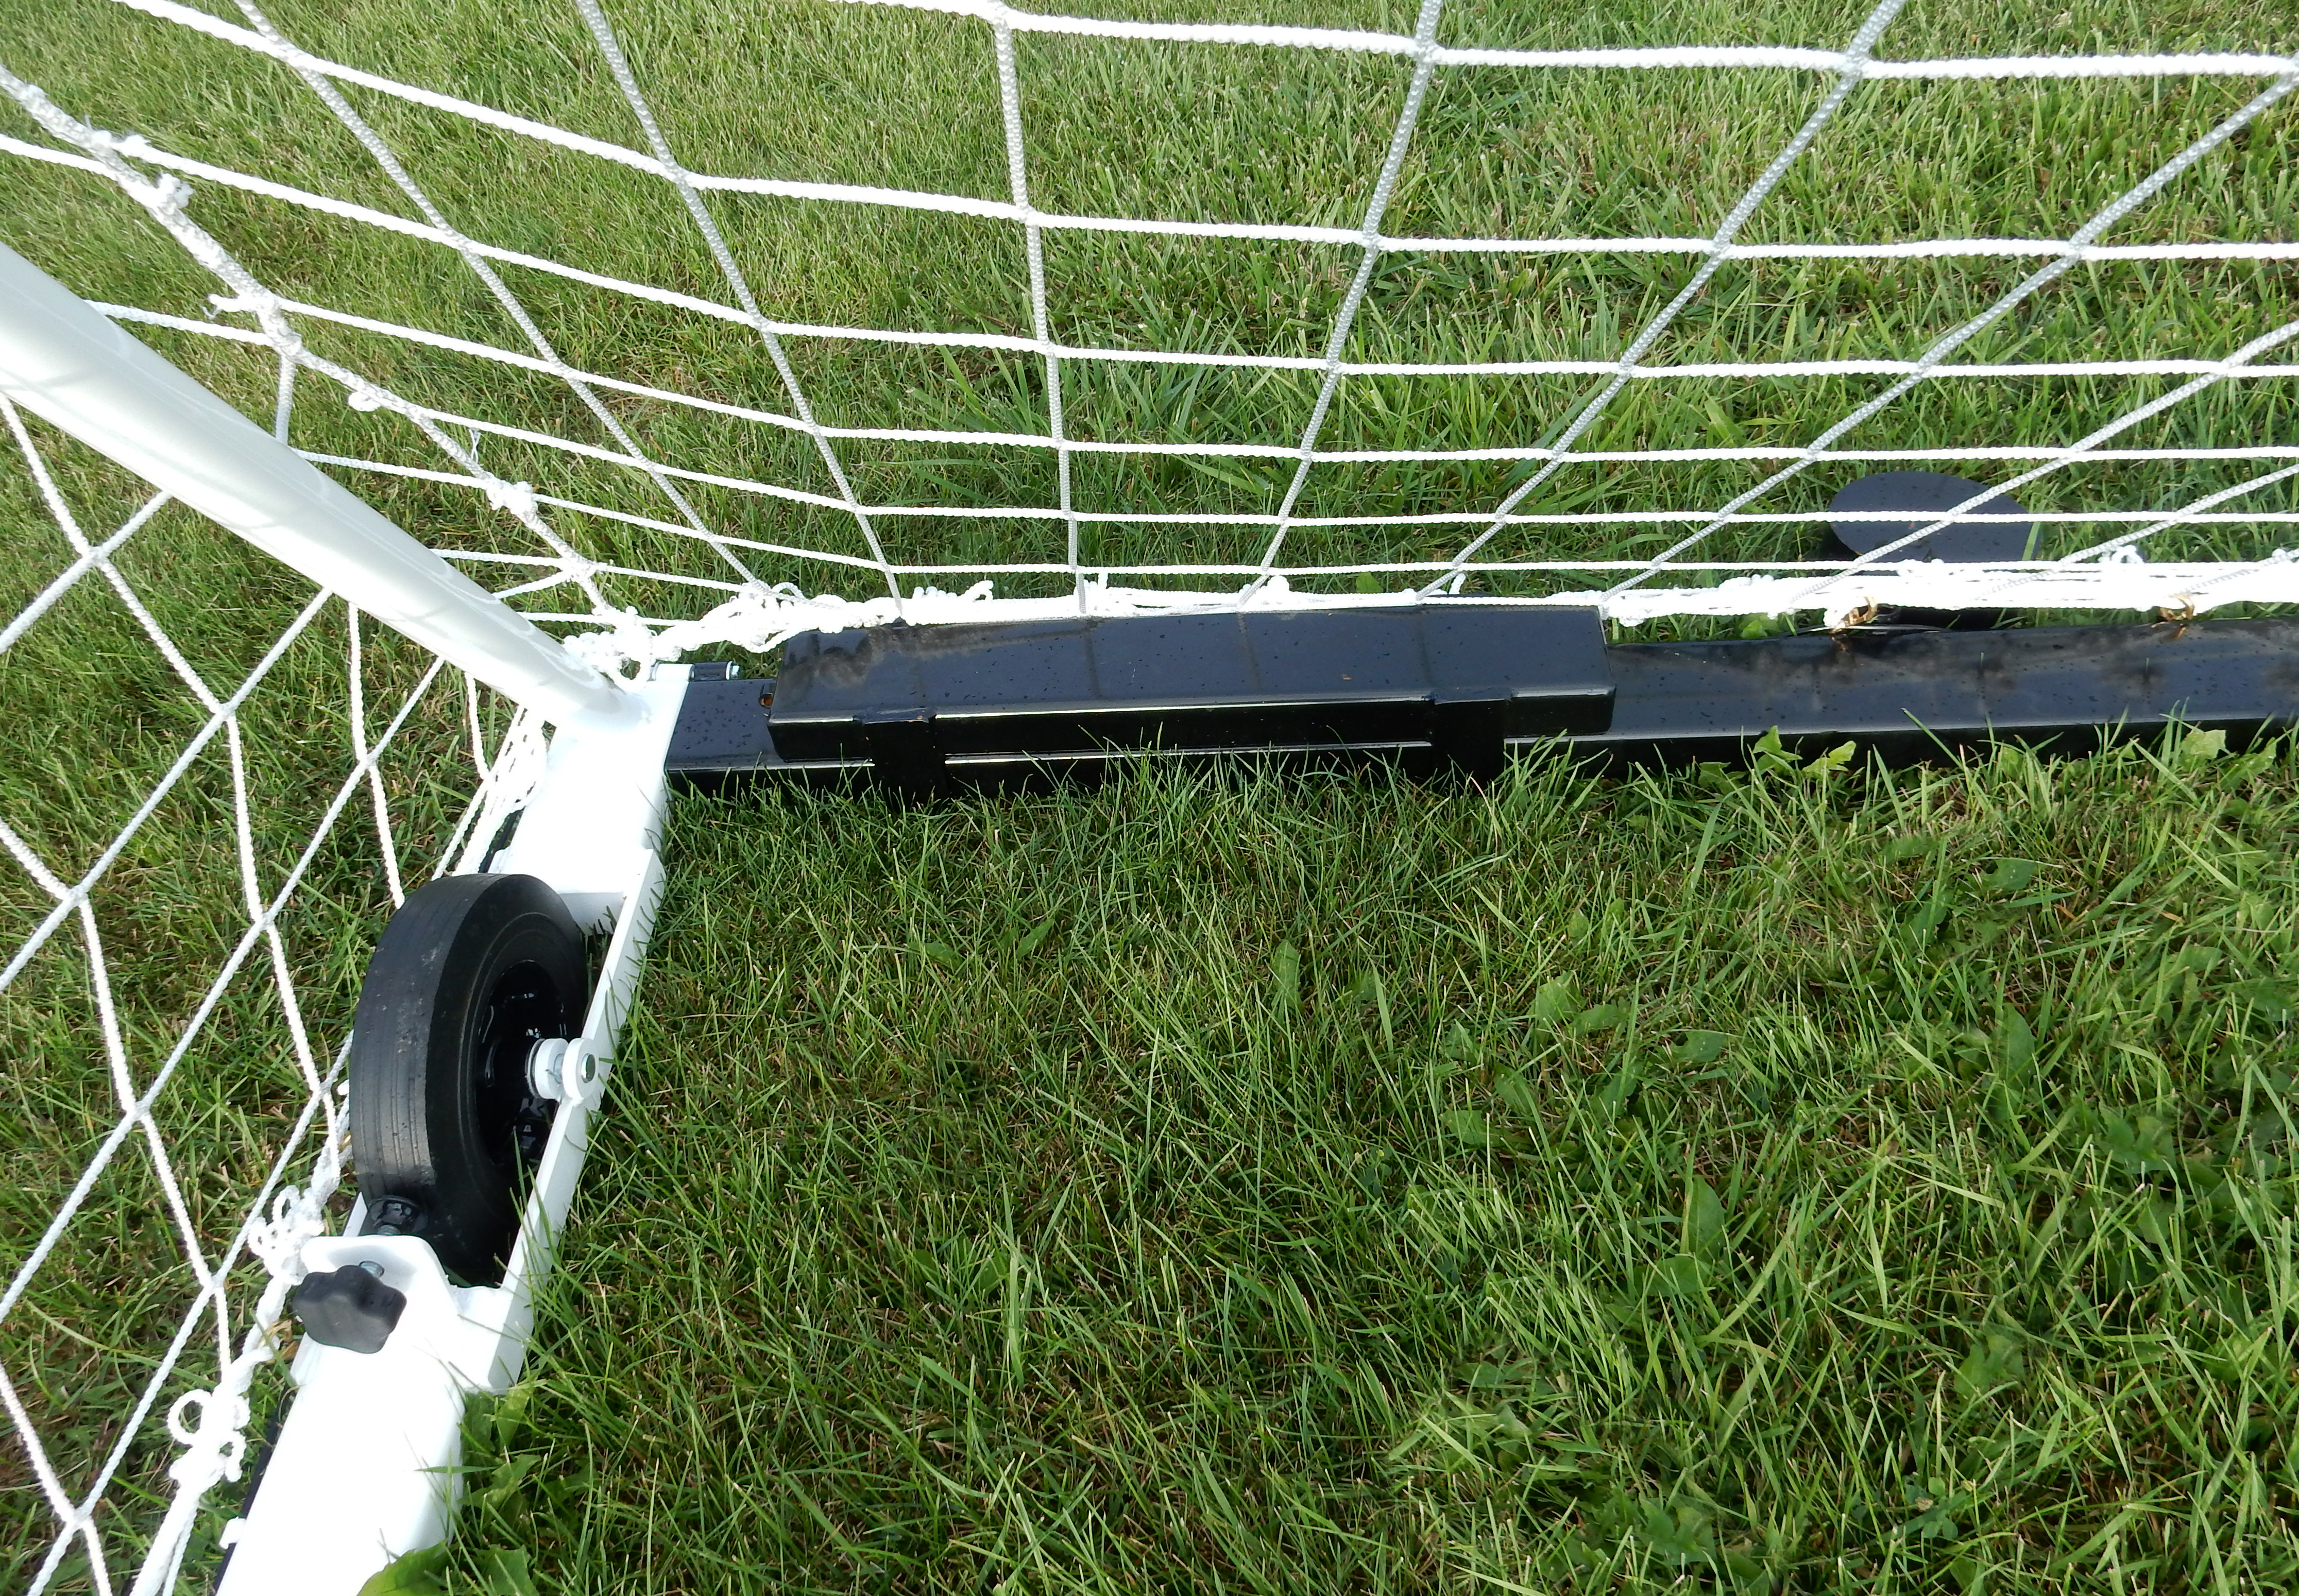 Model #ACW. Flat 25 pound anchor weight for movable soccer goal.